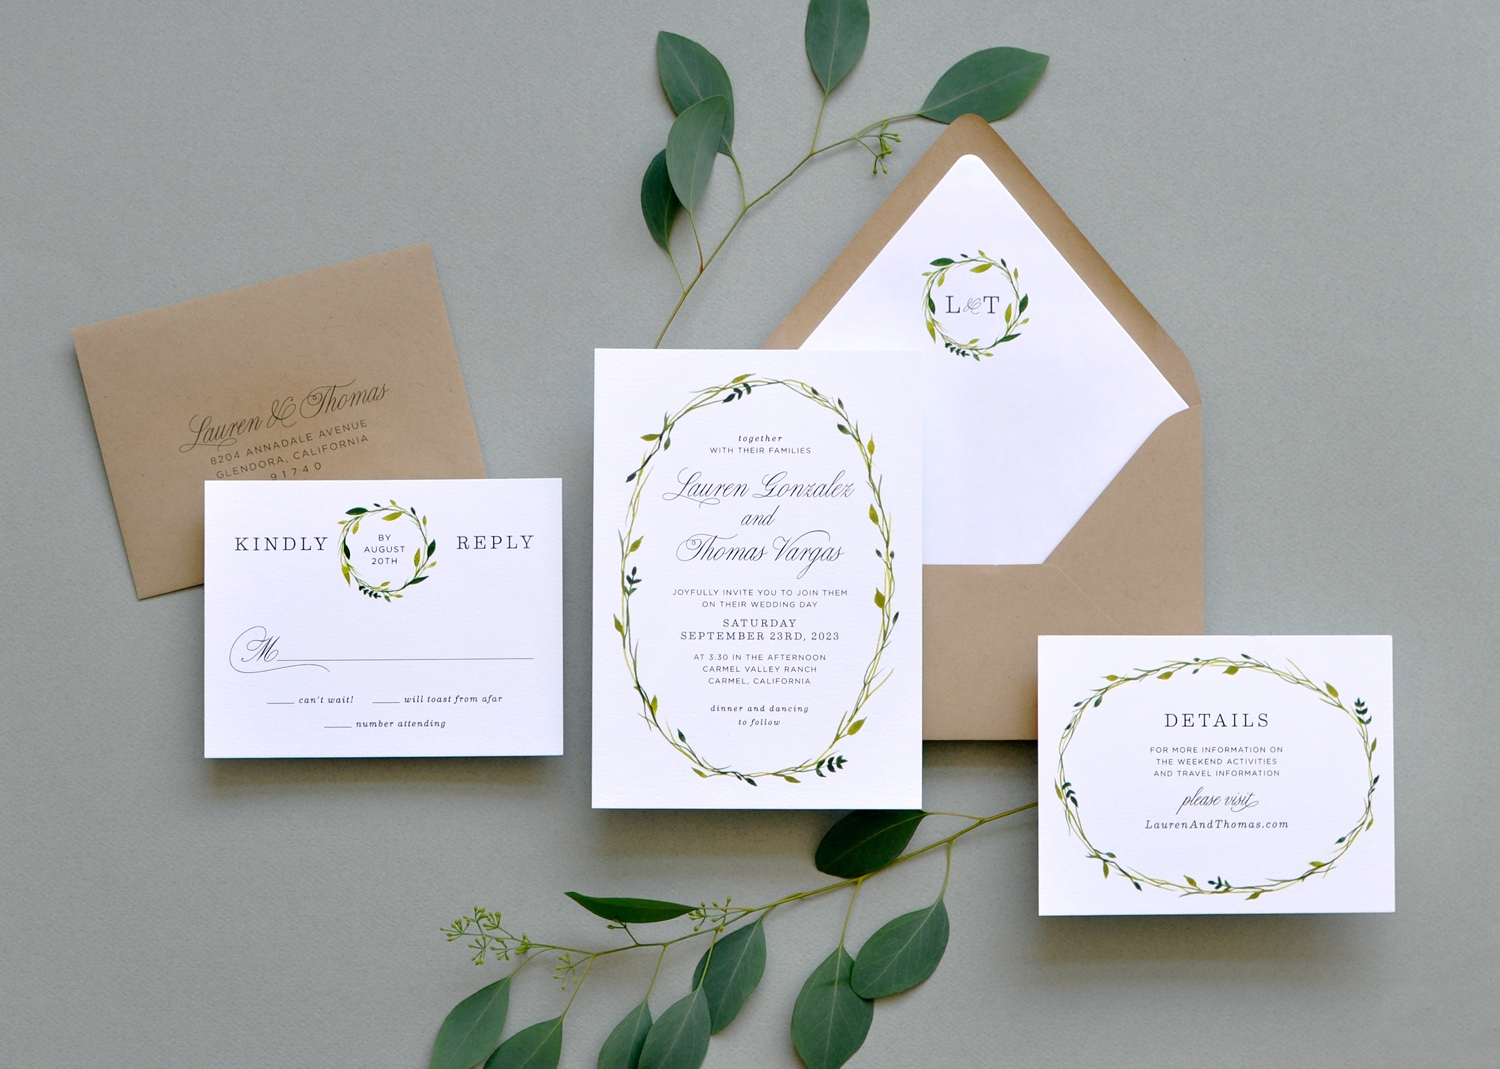 A wreath of delicate vines surrounds a contemporary text setting on this whimsical and romantic wedding invitation design!  The greenery is perfect for a garden wedding!